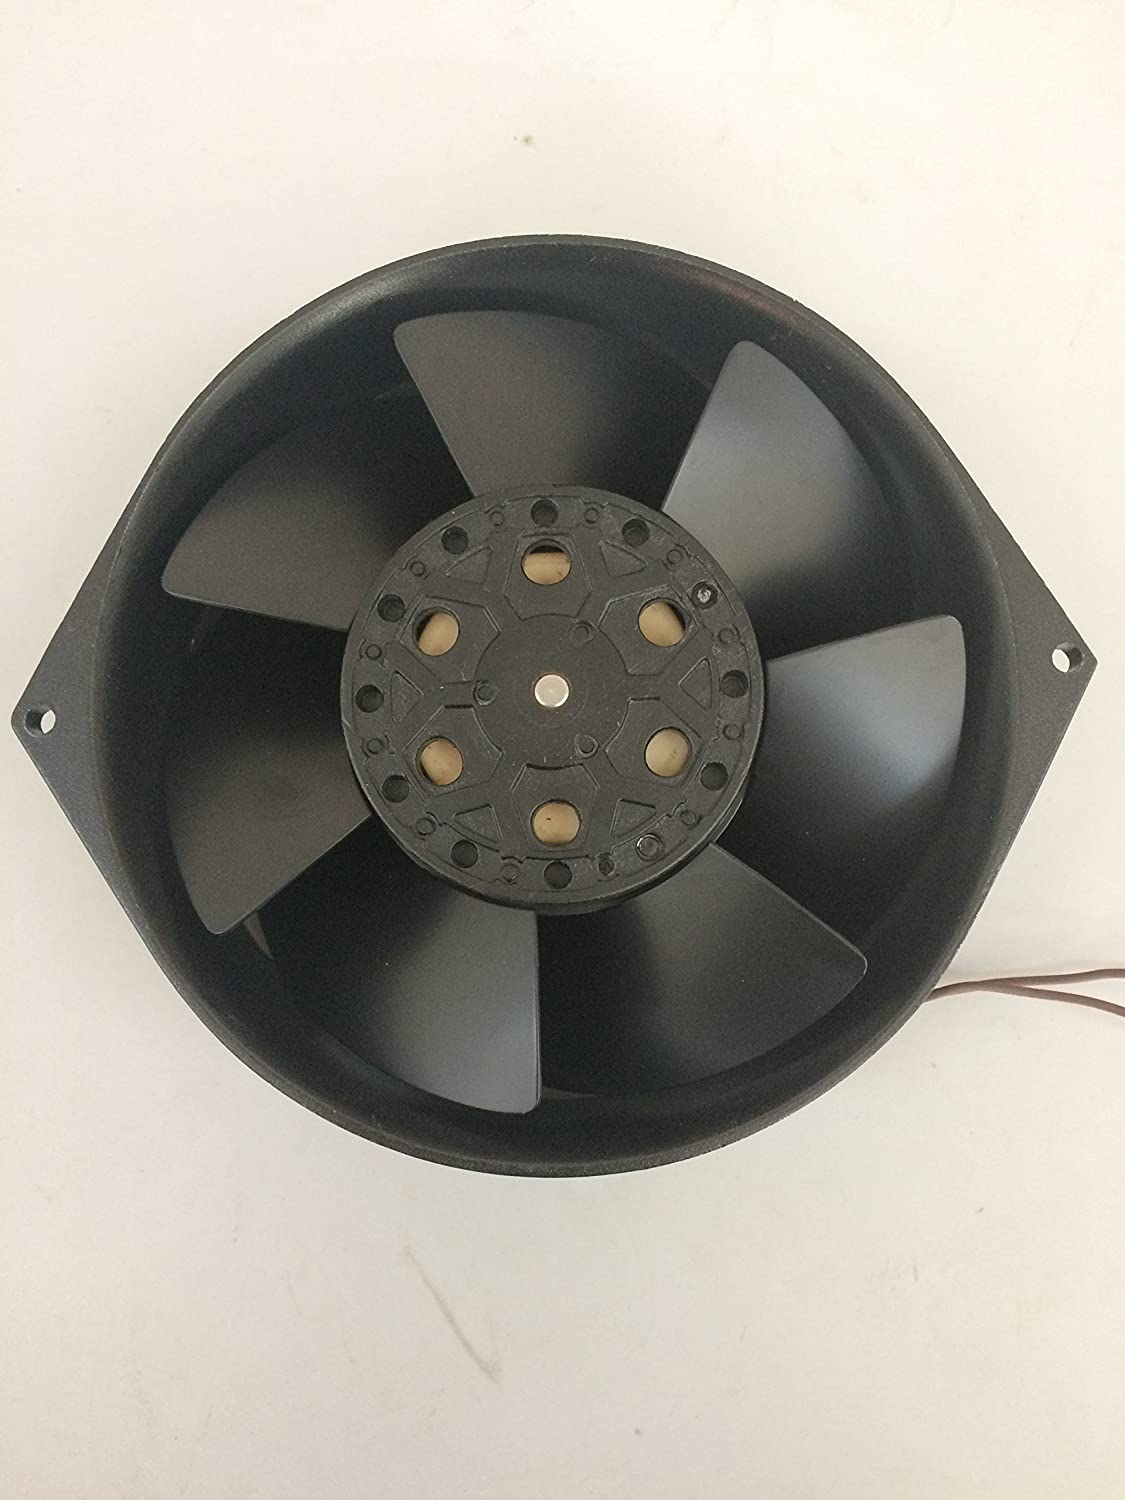 ueBEST AC axial Fan 5E-230B All Metal high Wind high air Pressure Cooling Fan,220V AC 172mm by 150mm by 55mm High Speed